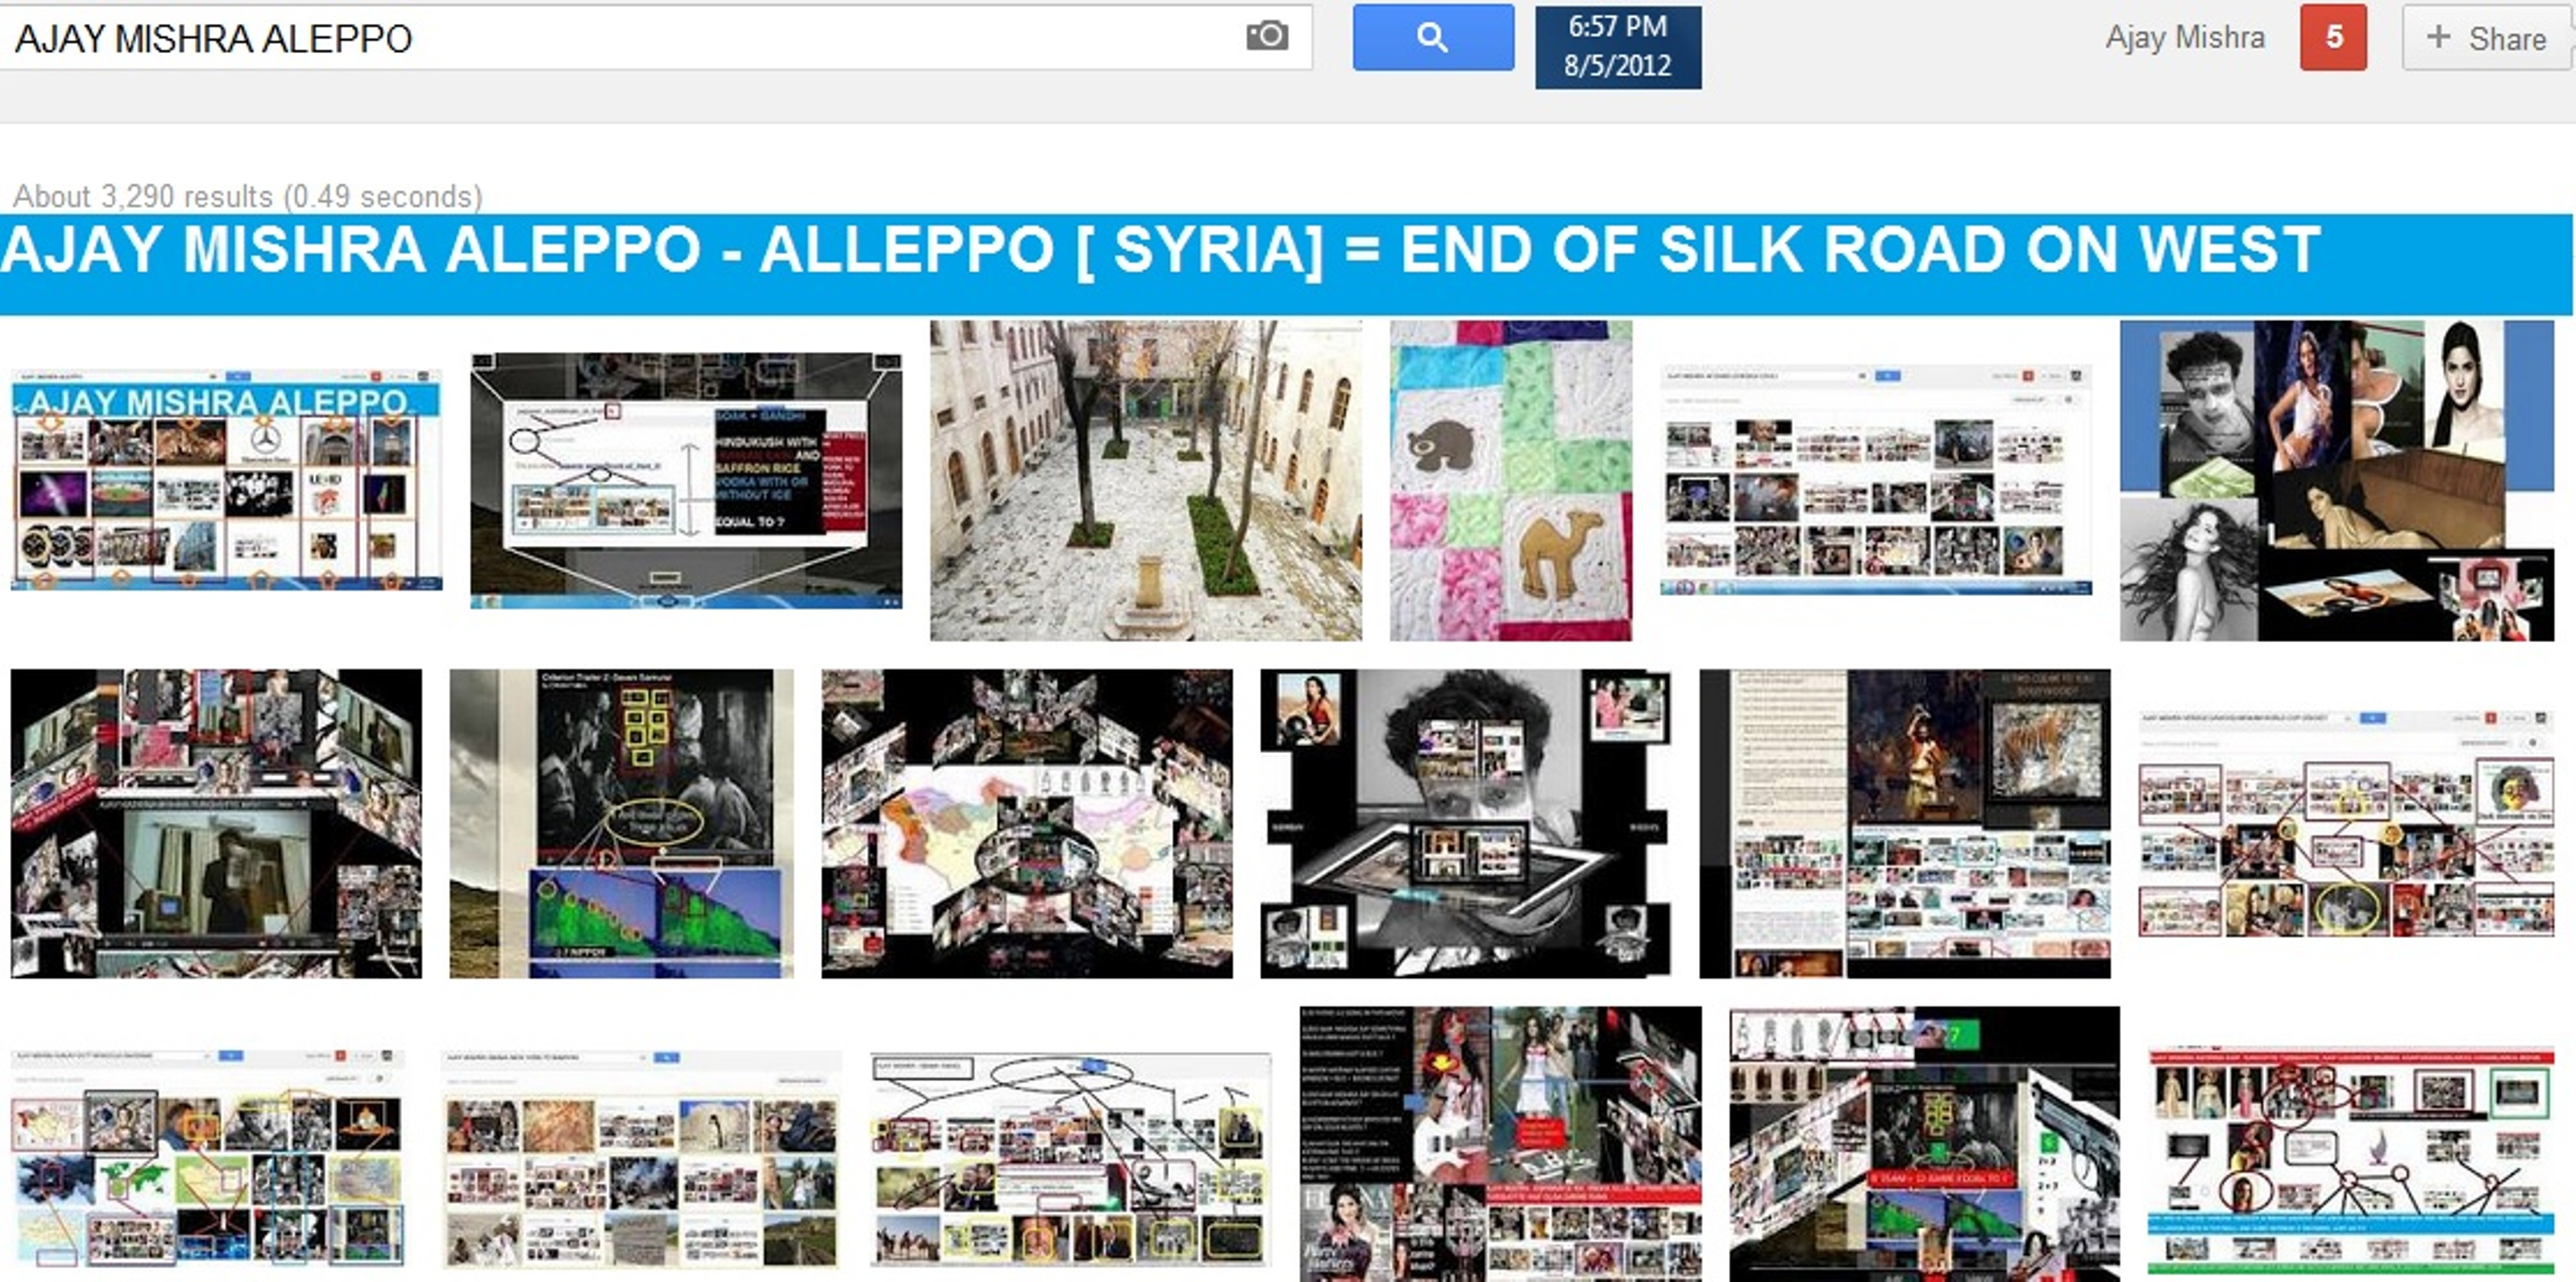 AJAY MISHRA ALEPPO [ SYRIA] MAPS - ALEPPO END OF THE WESTERN EXTREMITY OF THE SILK ROAD